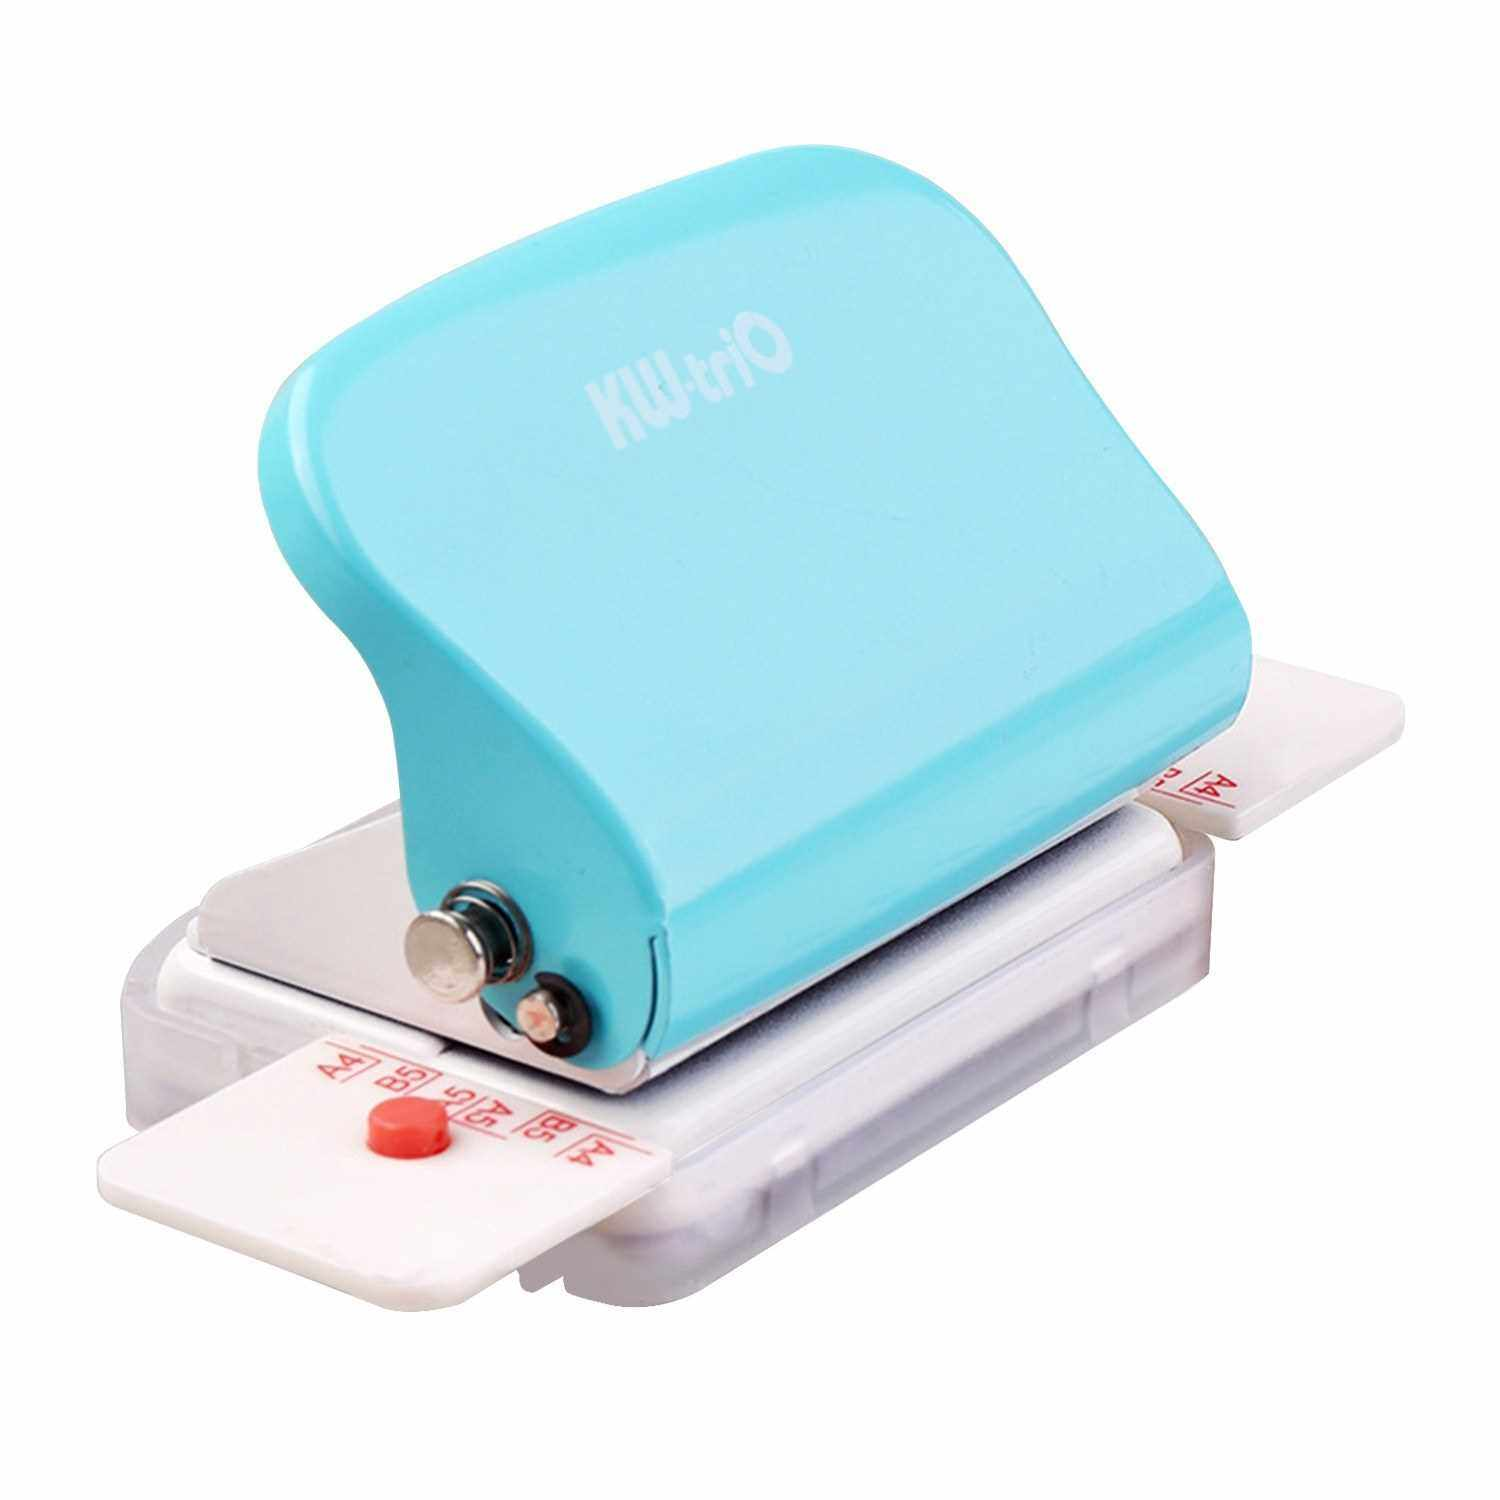 KW-trio 6-Hole Paper Punch Handheld Metal Hole Puncher 5 Sheet Capacity 6mm for A4 A5 B5 Notebook Scrapbook Diary Planner (Green)